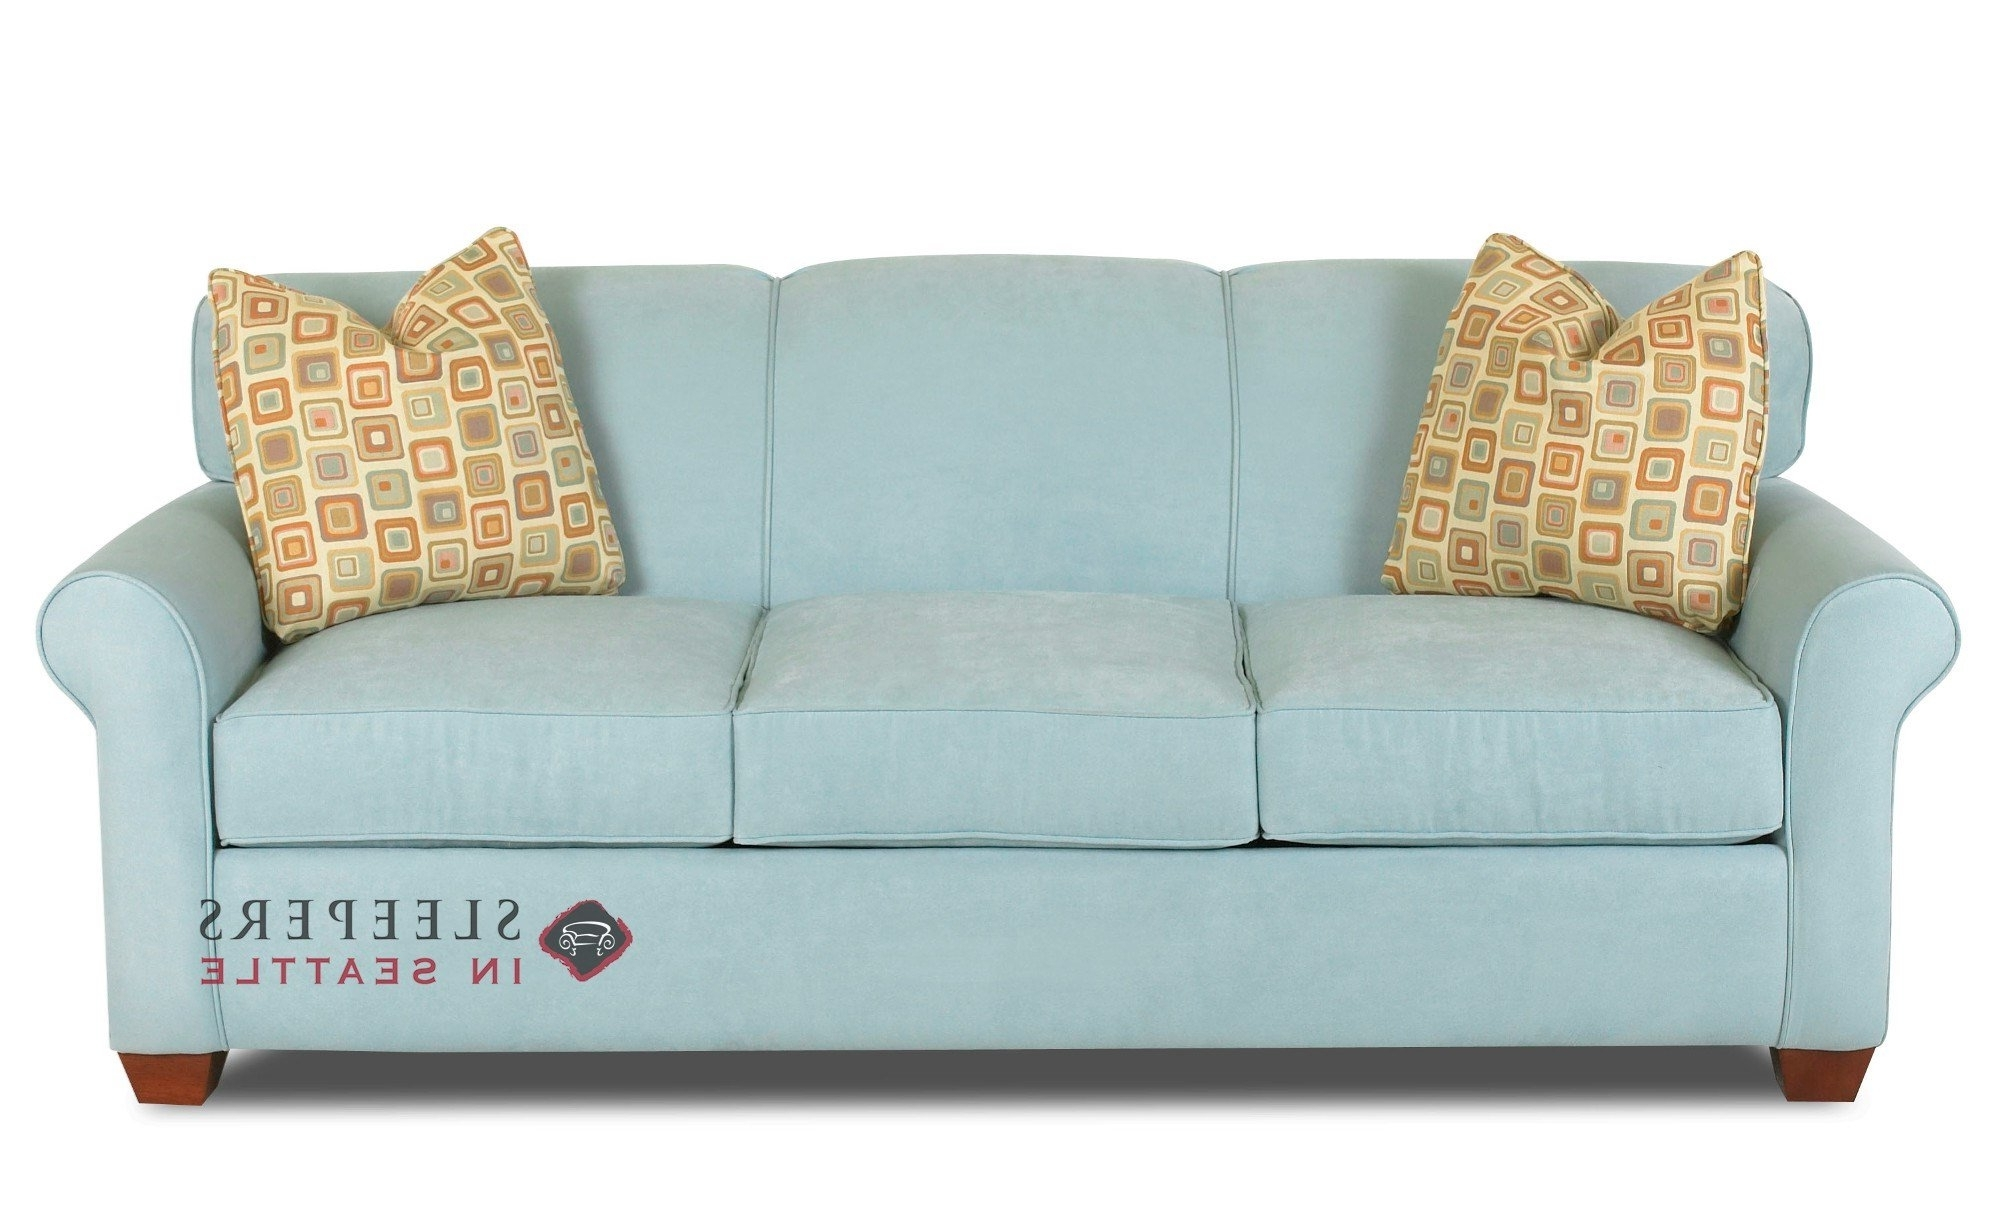 Customize And Personalize Calgary Queen Fabric Sofasavvy In Most Recent Queen Size Sofas (View 15 of 15)